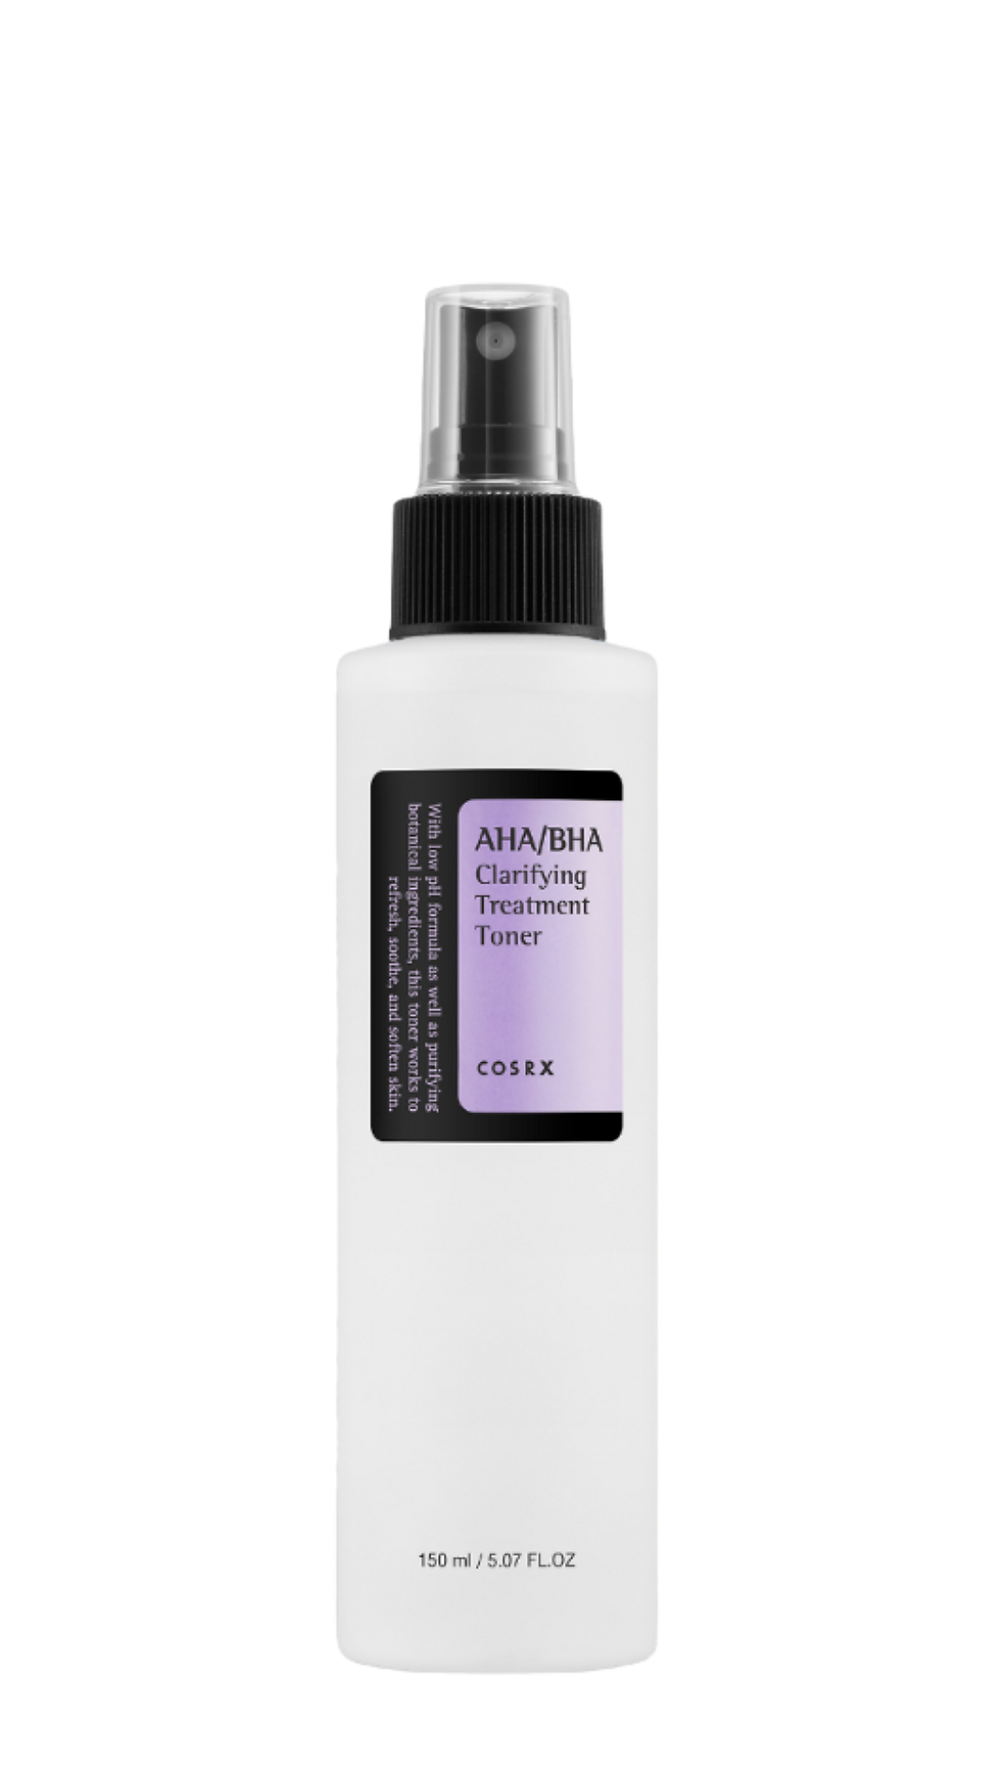 COSRX AHA/BHA Clarifying Treatment Toner. Suitable for Oily, Acne-Prone, Combination Skin. $17